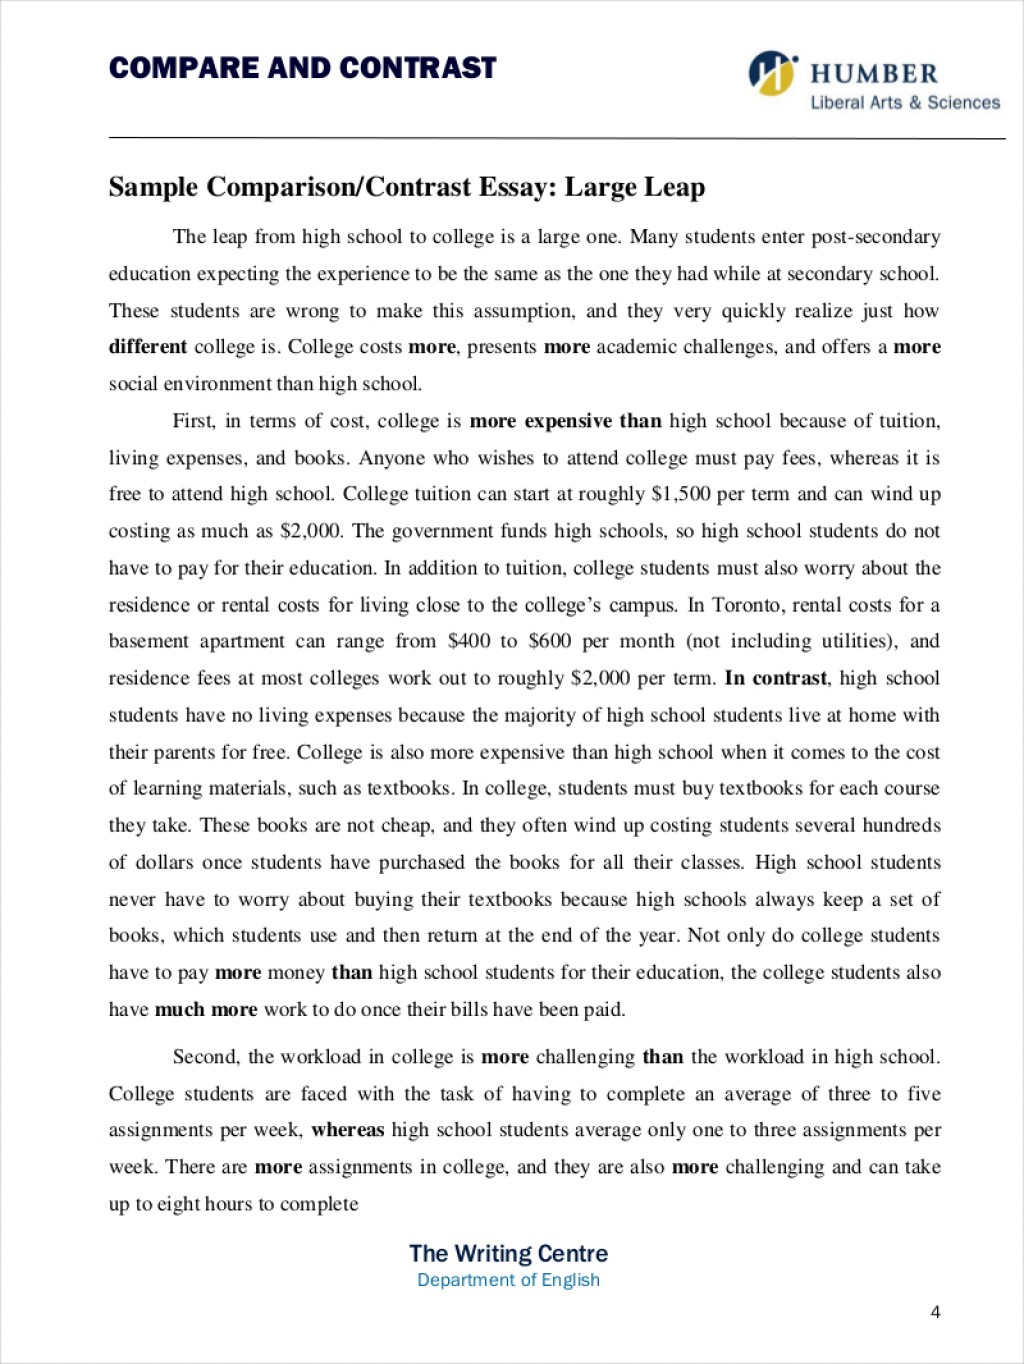 014 How To Write Compare And Contrast Essay Example Comparative Samples Free Pdf Format Download Throughout Examples Comparison Thesis Coles Thecolossus Co Within Ex Outstanding A Block Introduction Paragraph Large